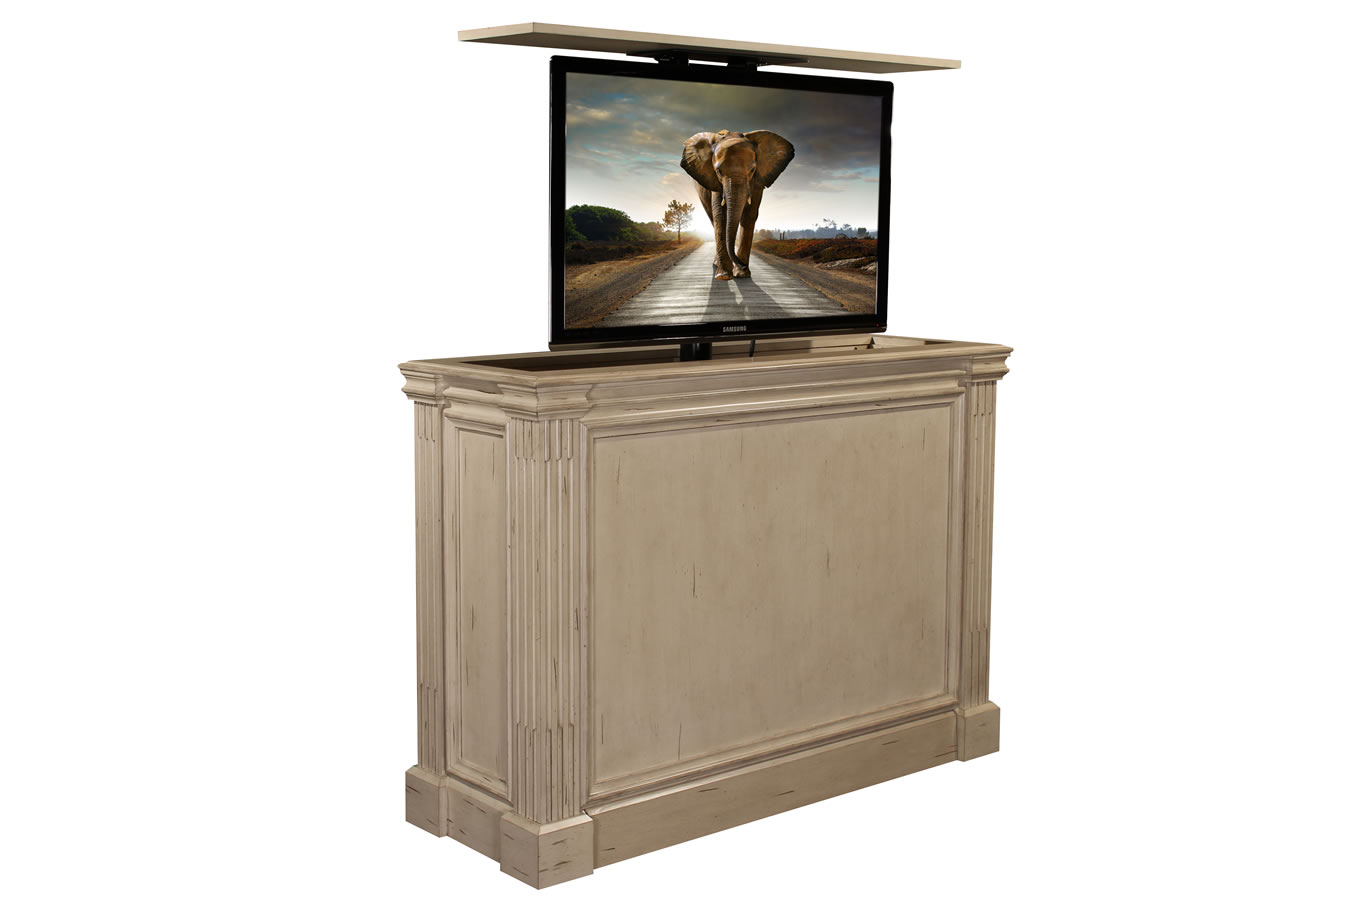 Ritz Camden White Pop up TV lift cabinet